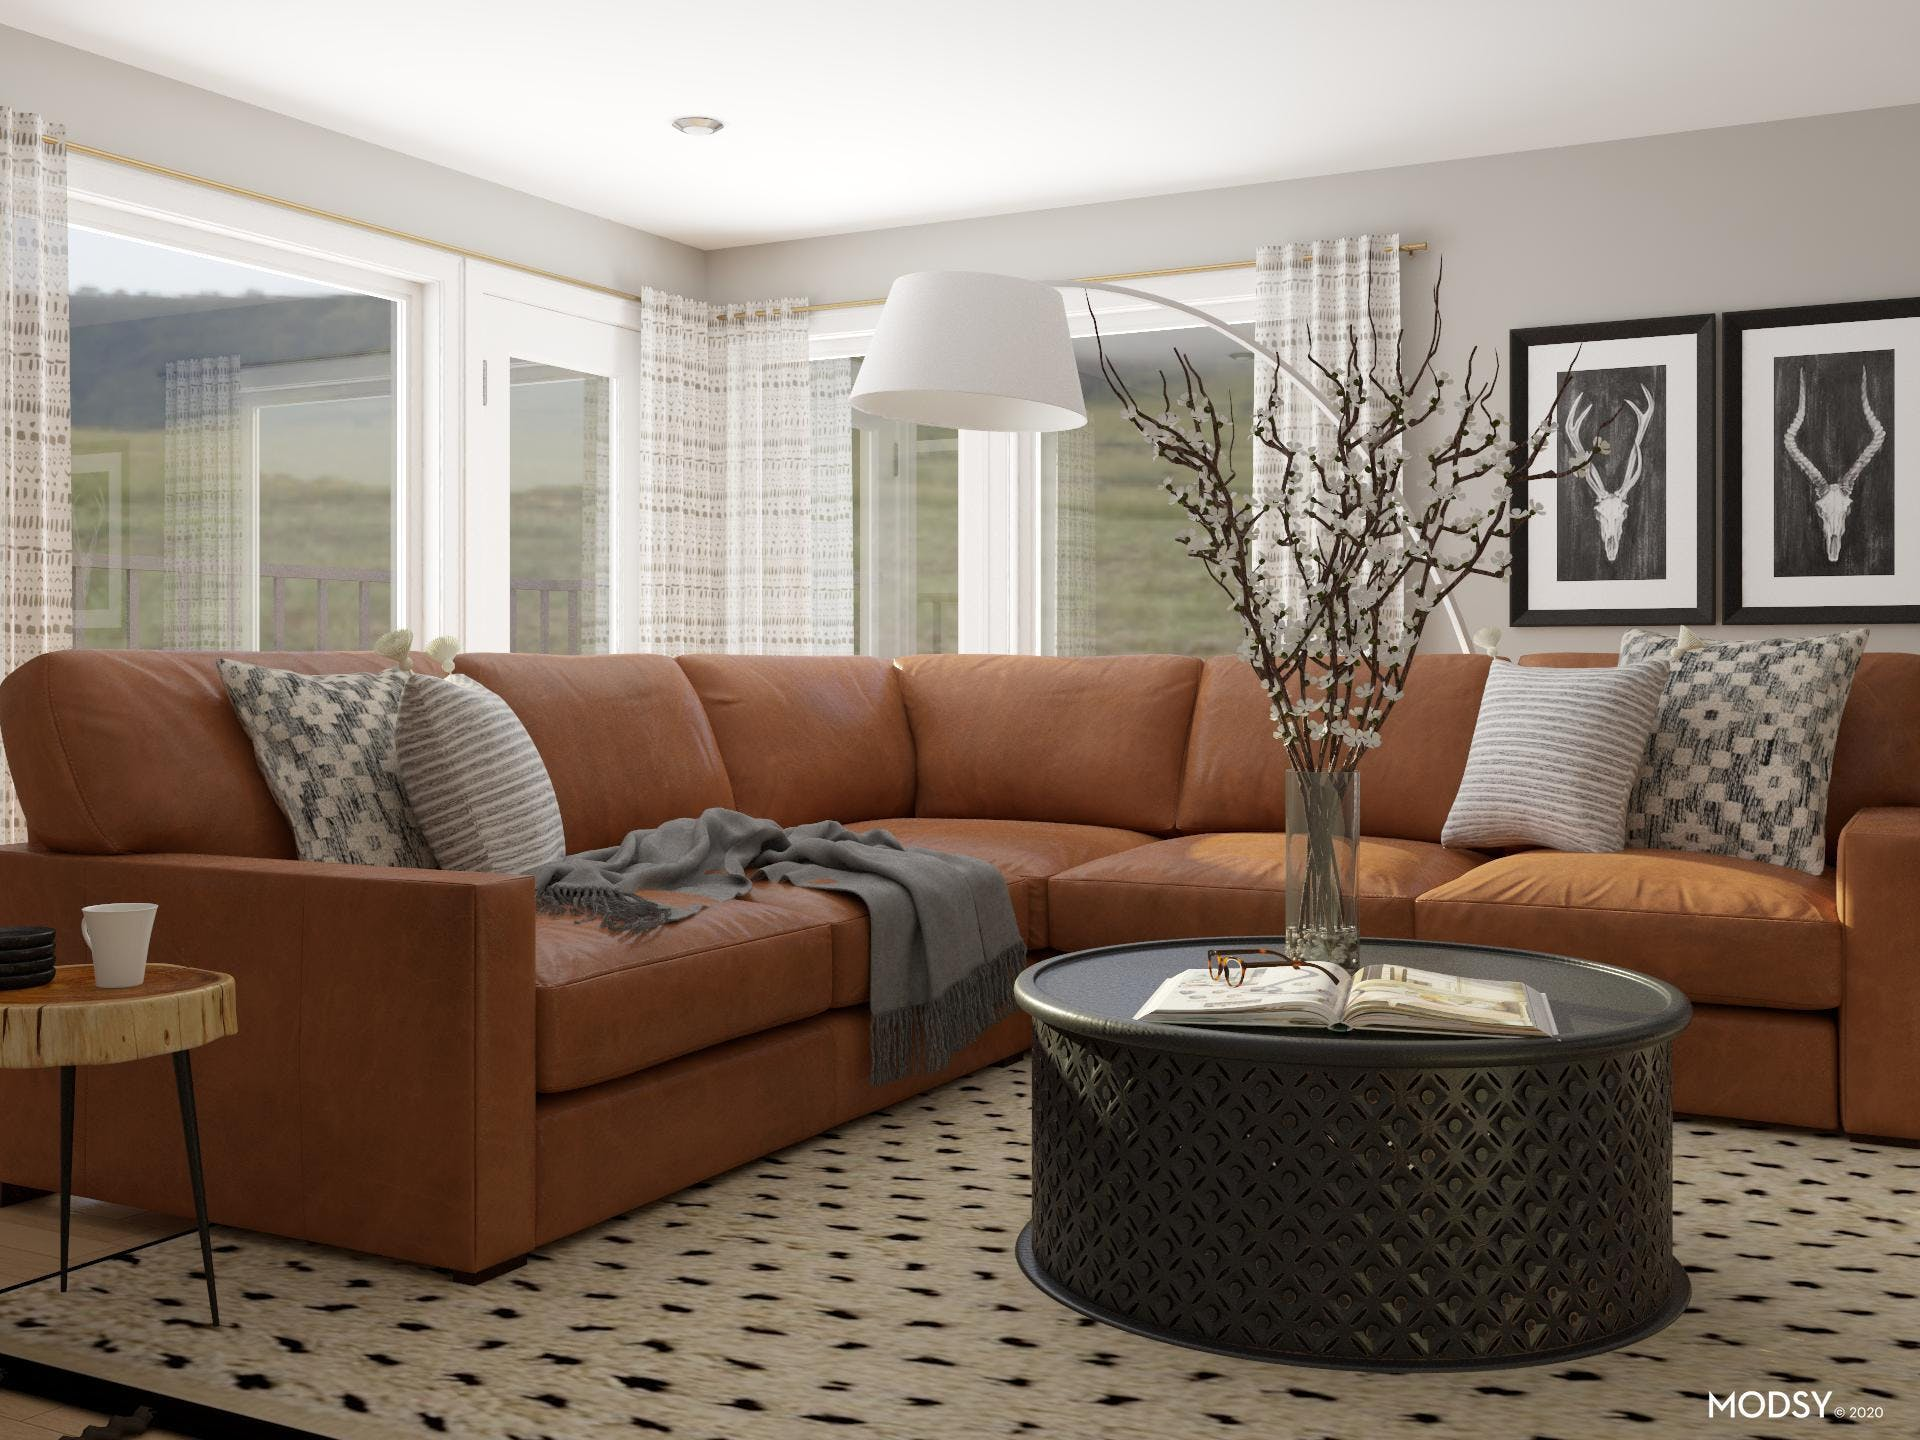 Leather Sectional: Fall In Love